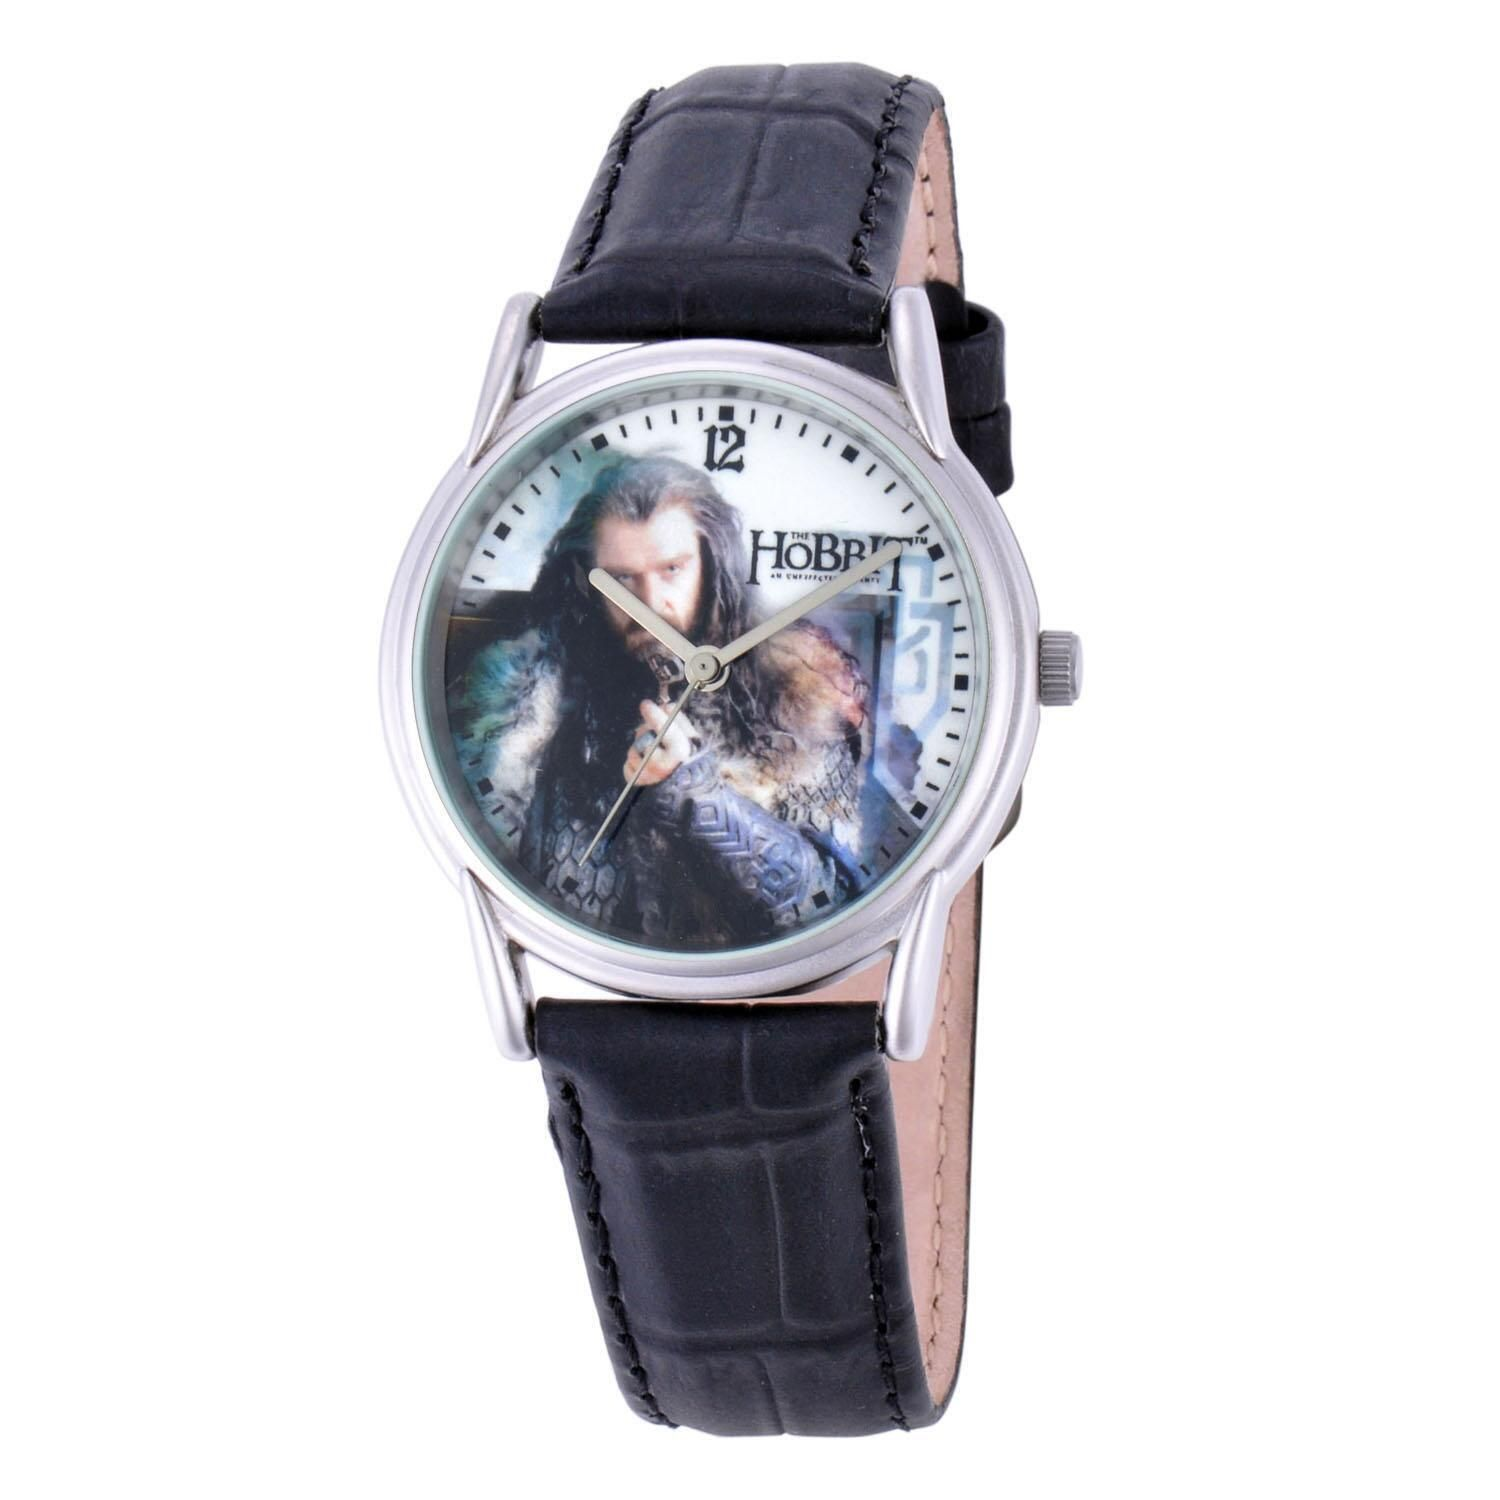 Wear this Thorin Oakenshield watch and stay on time in your quest to reclaim Erebor for the dwarves. The watch…